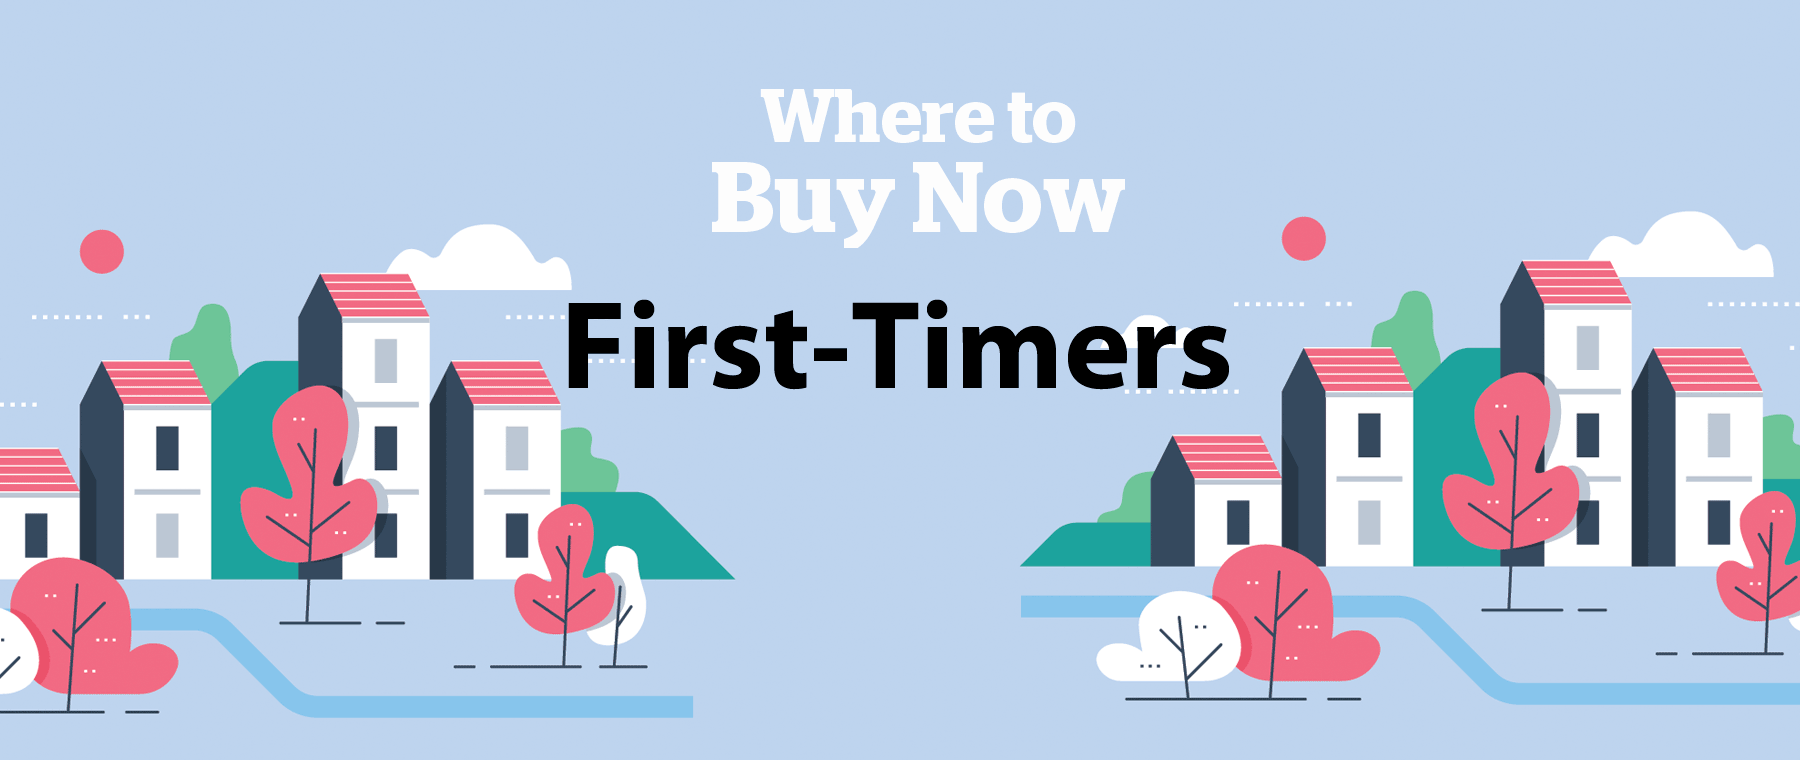 Where to Buy Now: 5 best neighbourhoods for first-time buyers